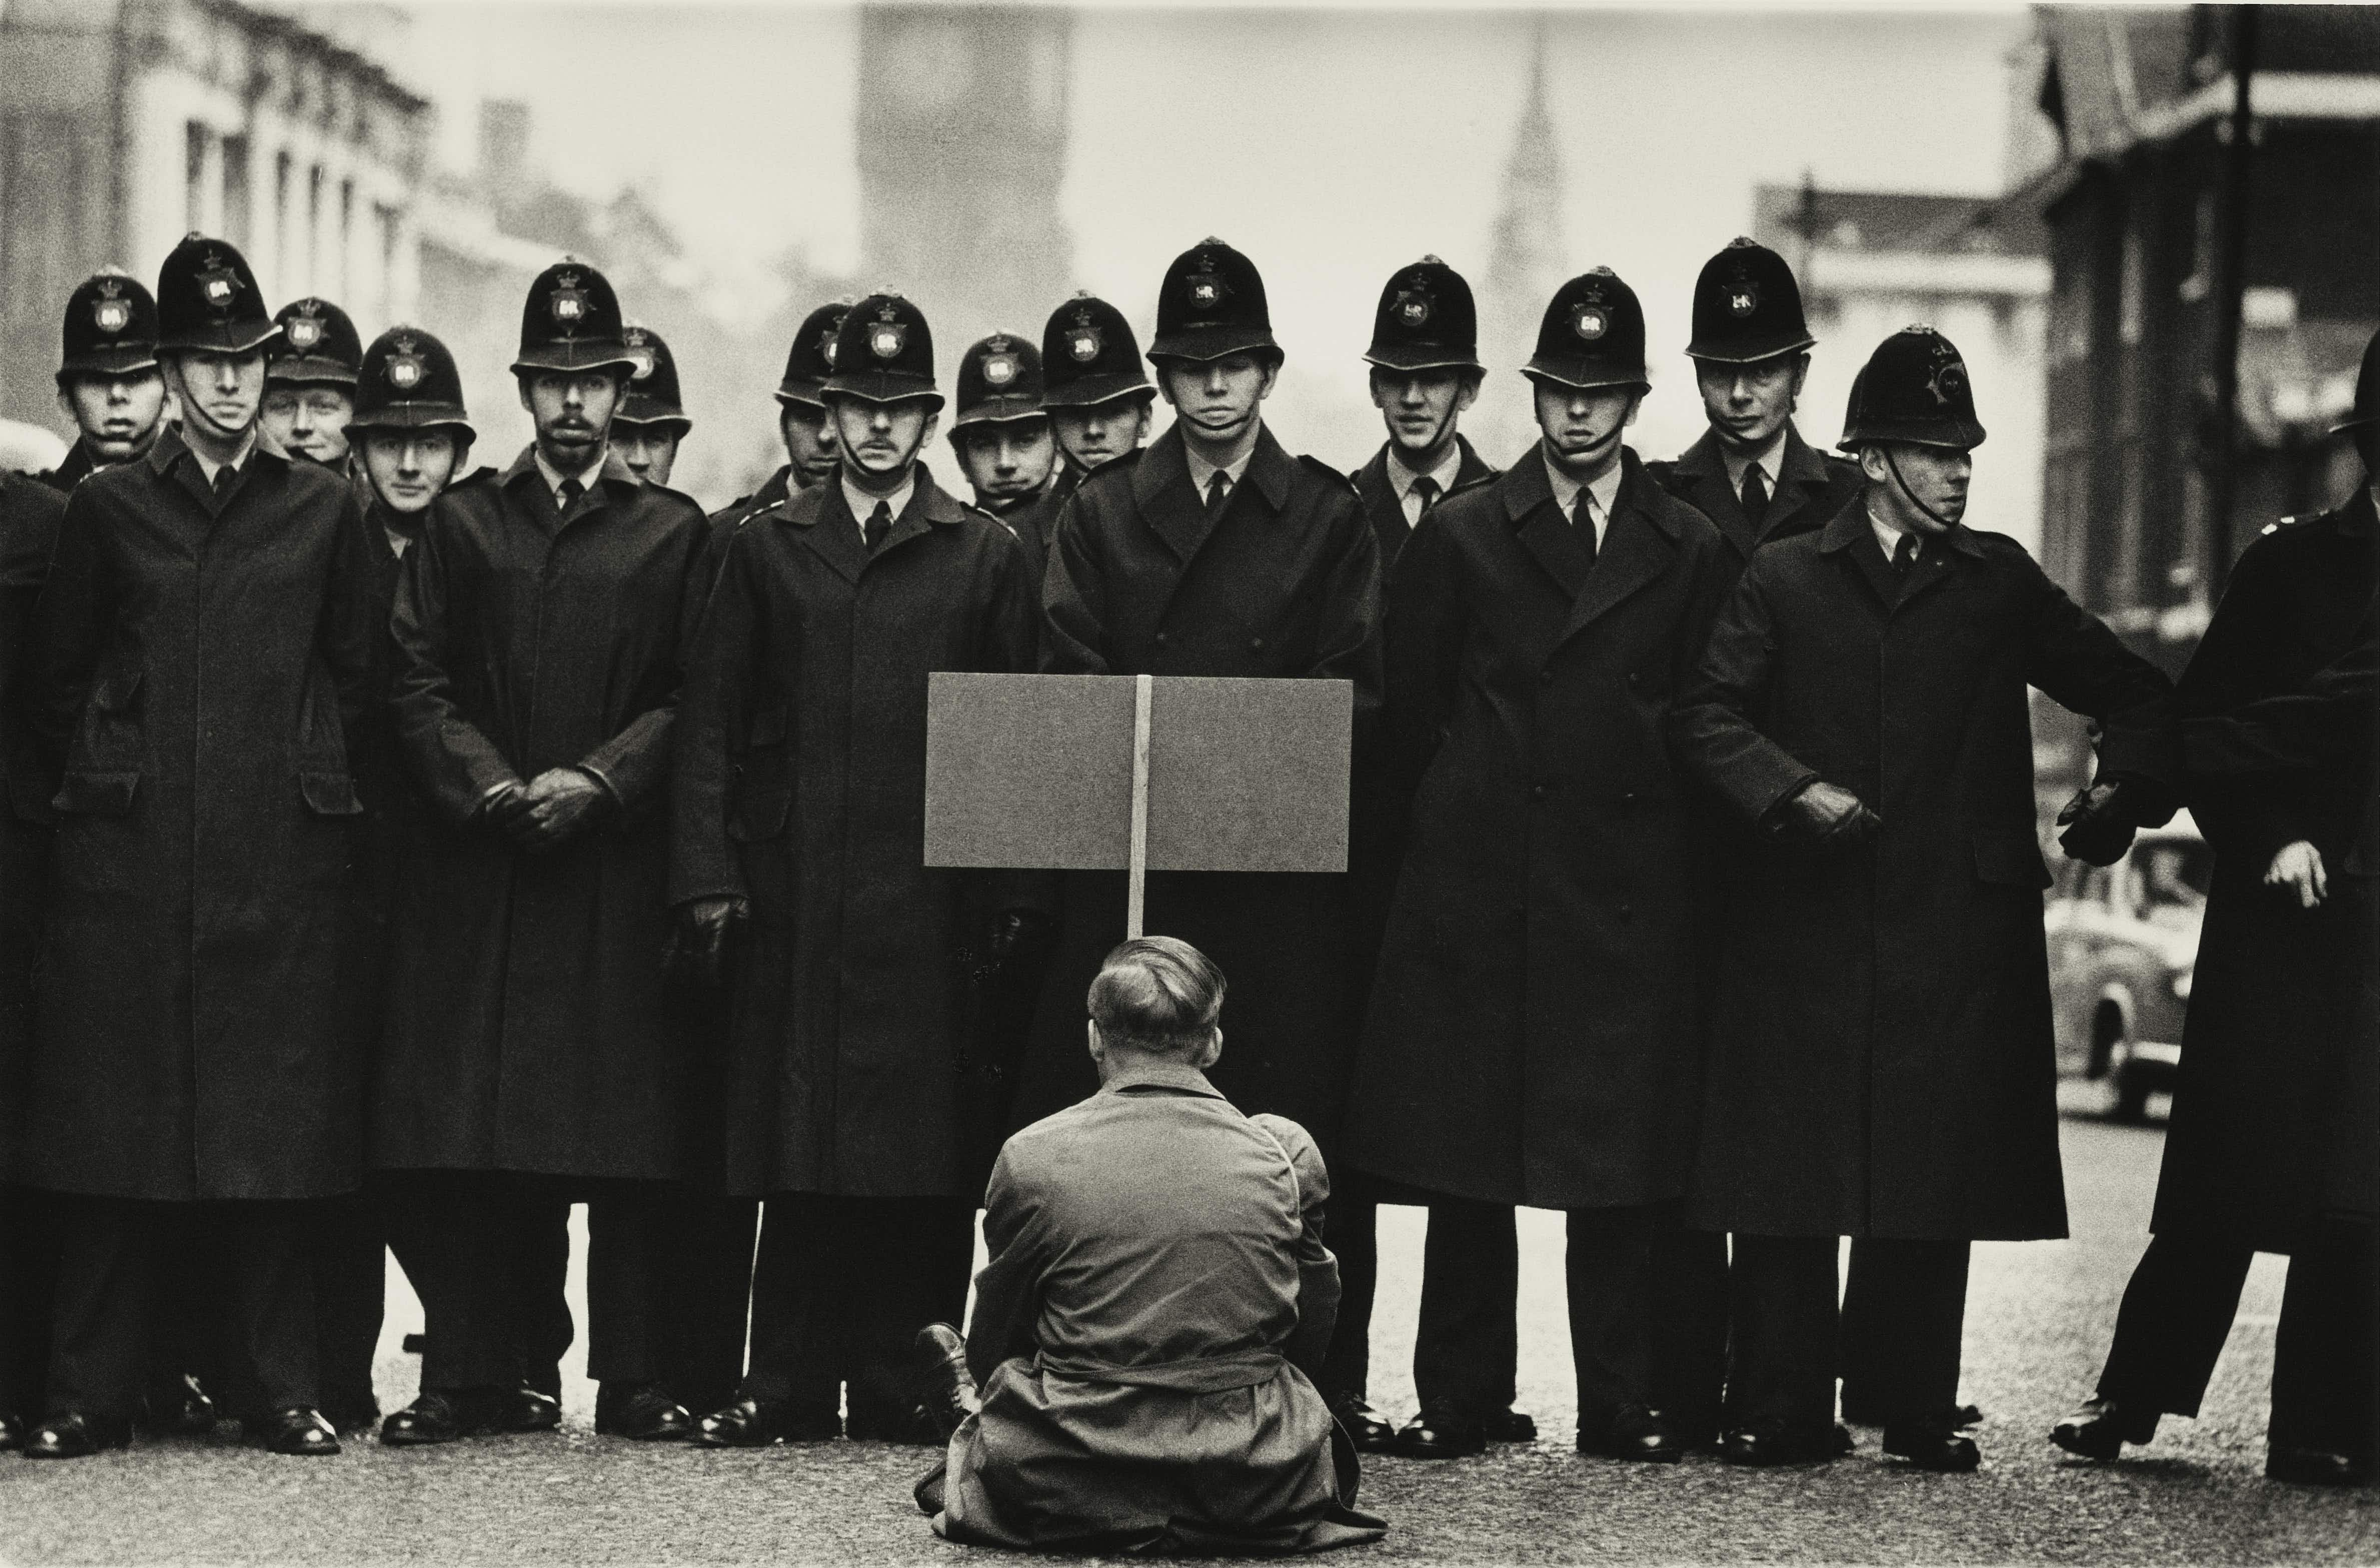 Legendary photojournalist Don McCullin to be celebrated at Tate Britain